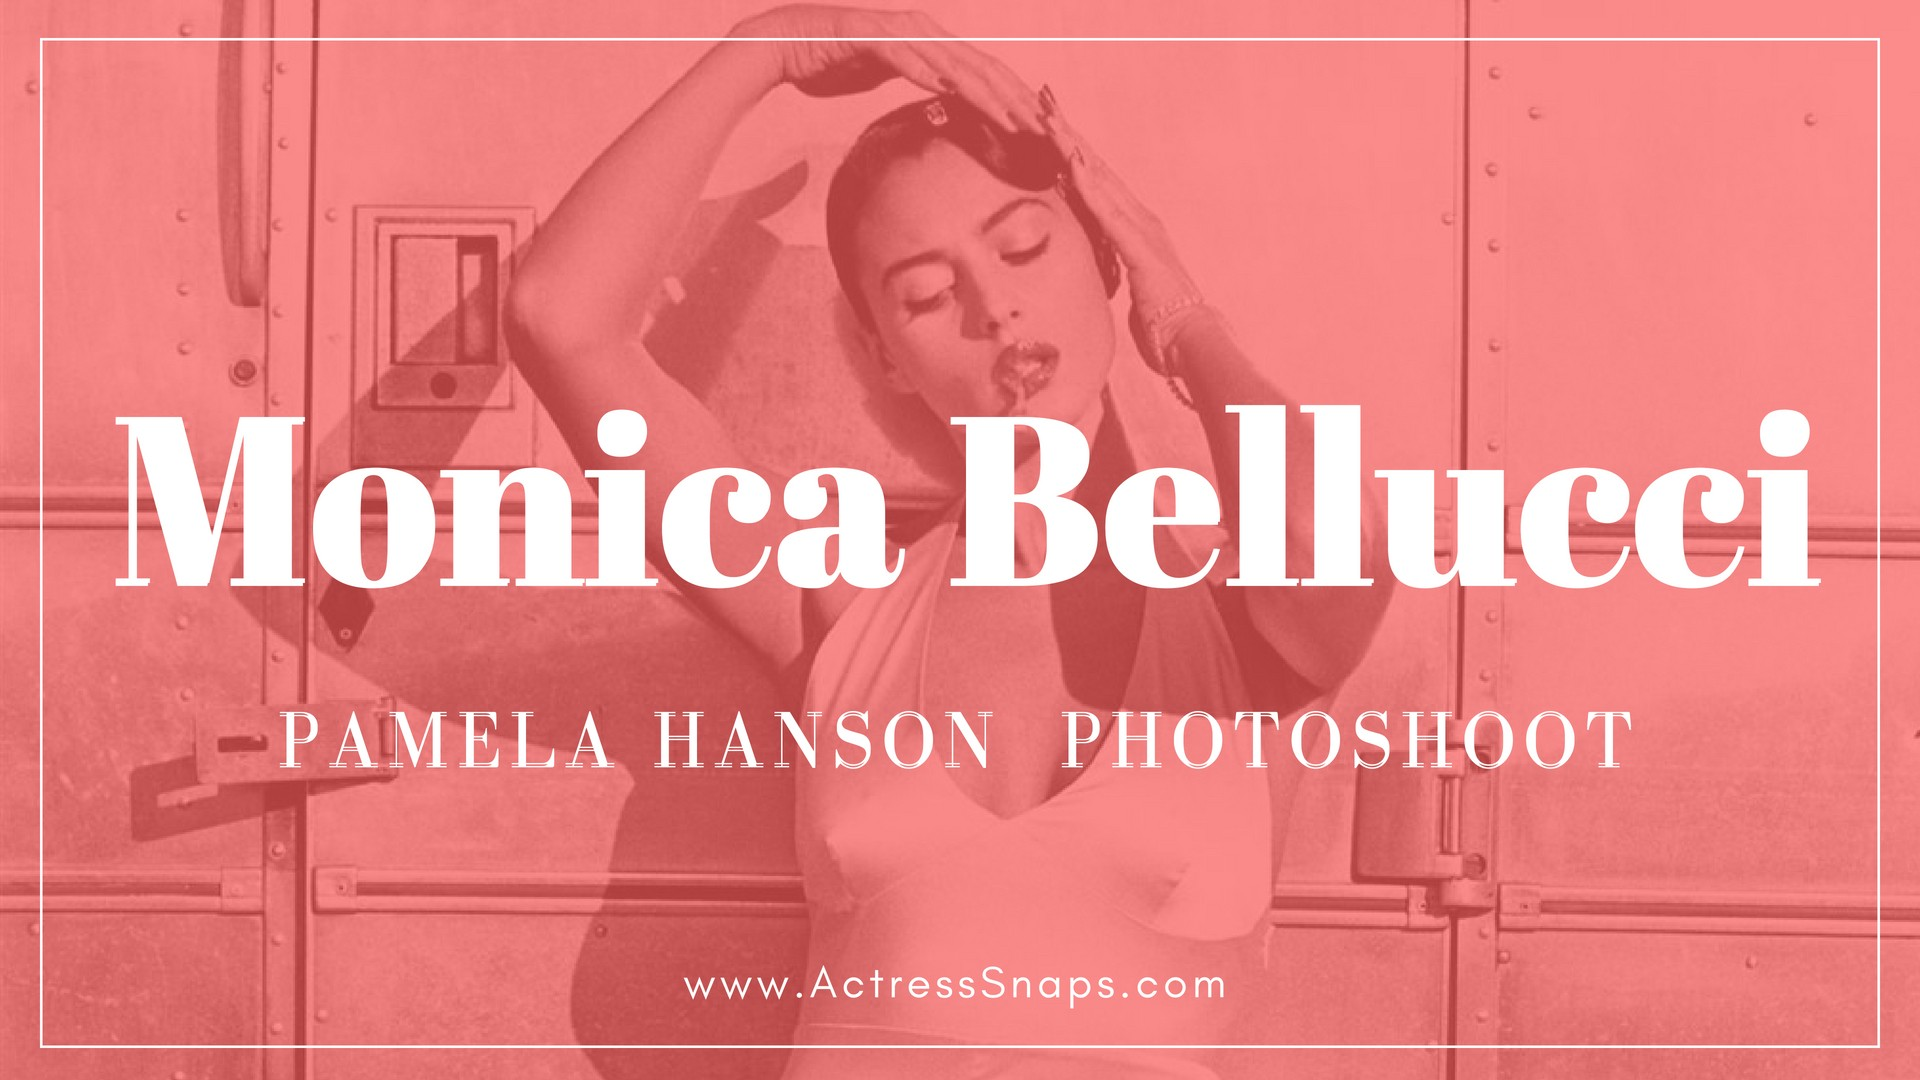 Monica Bellucci - Hot Pamela Hanson PhotoShoot - Sexy Actress Pictures | Hot Actress Pictures - ActressSnaps.com